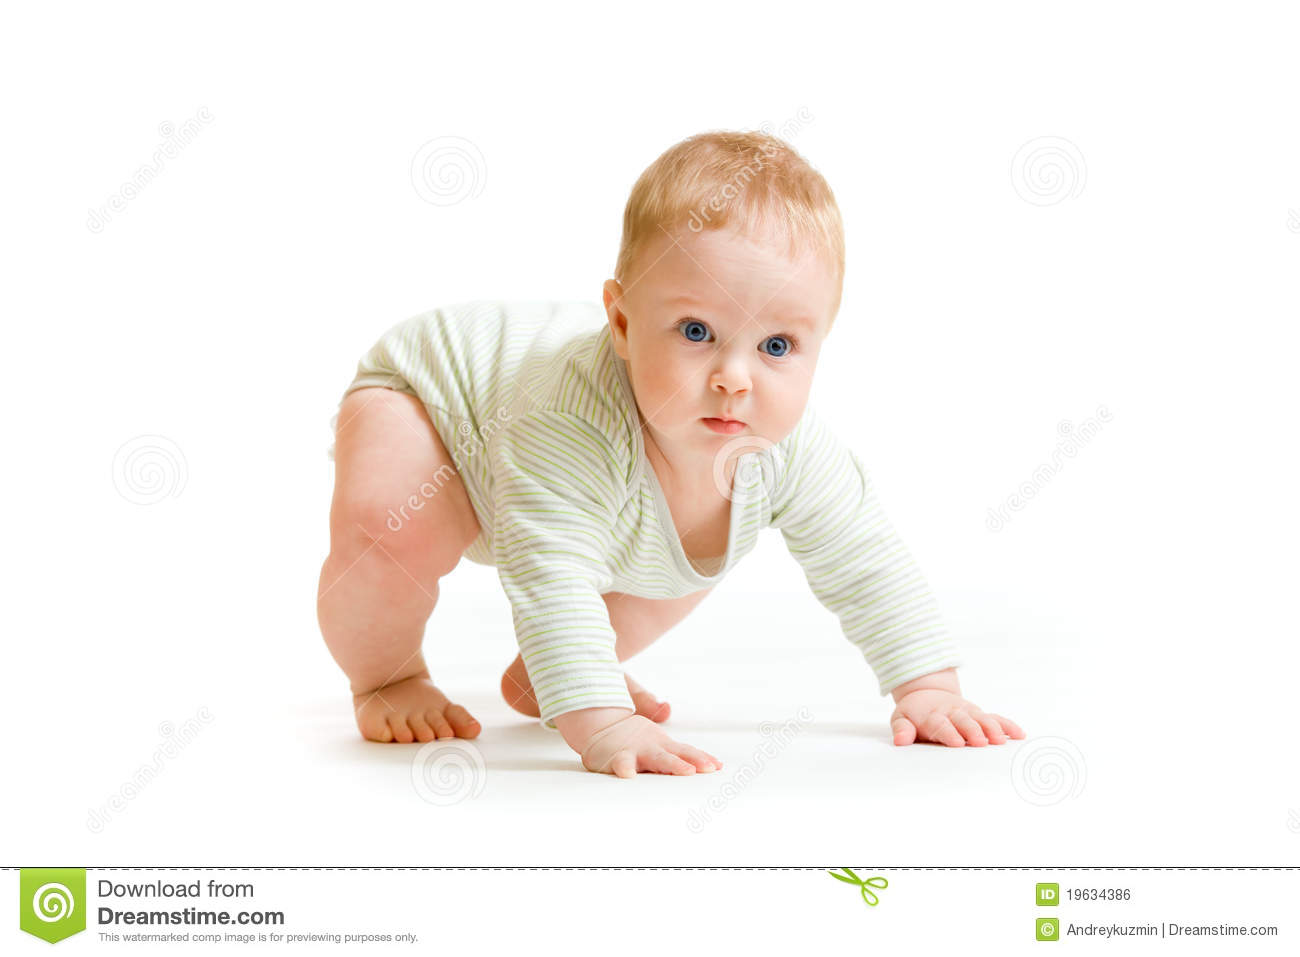 Trying for a baby help